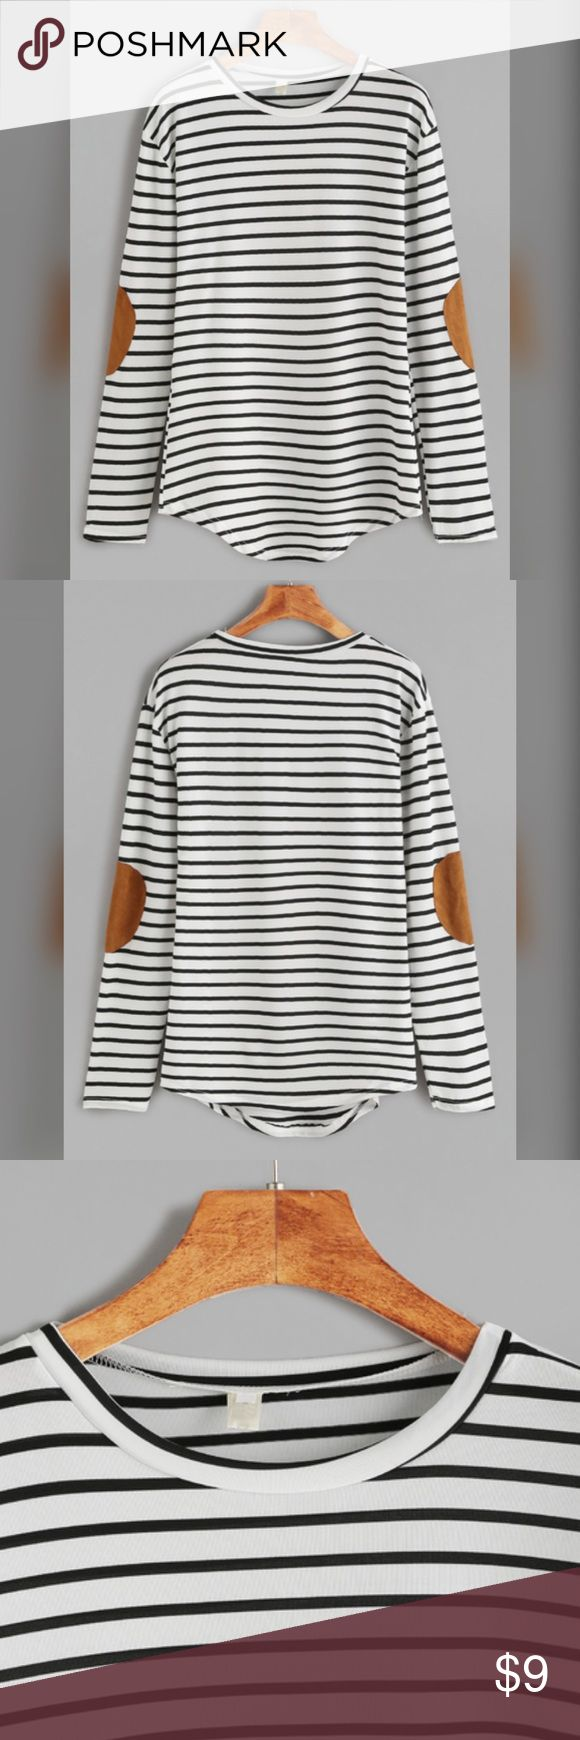 Long sleeve striped shirt New condition. Small but the shirt is a stretchy material so it could easily fit a medium. Super soft and comfortable shirt. No trades. Tops Tees - Long Sleeve